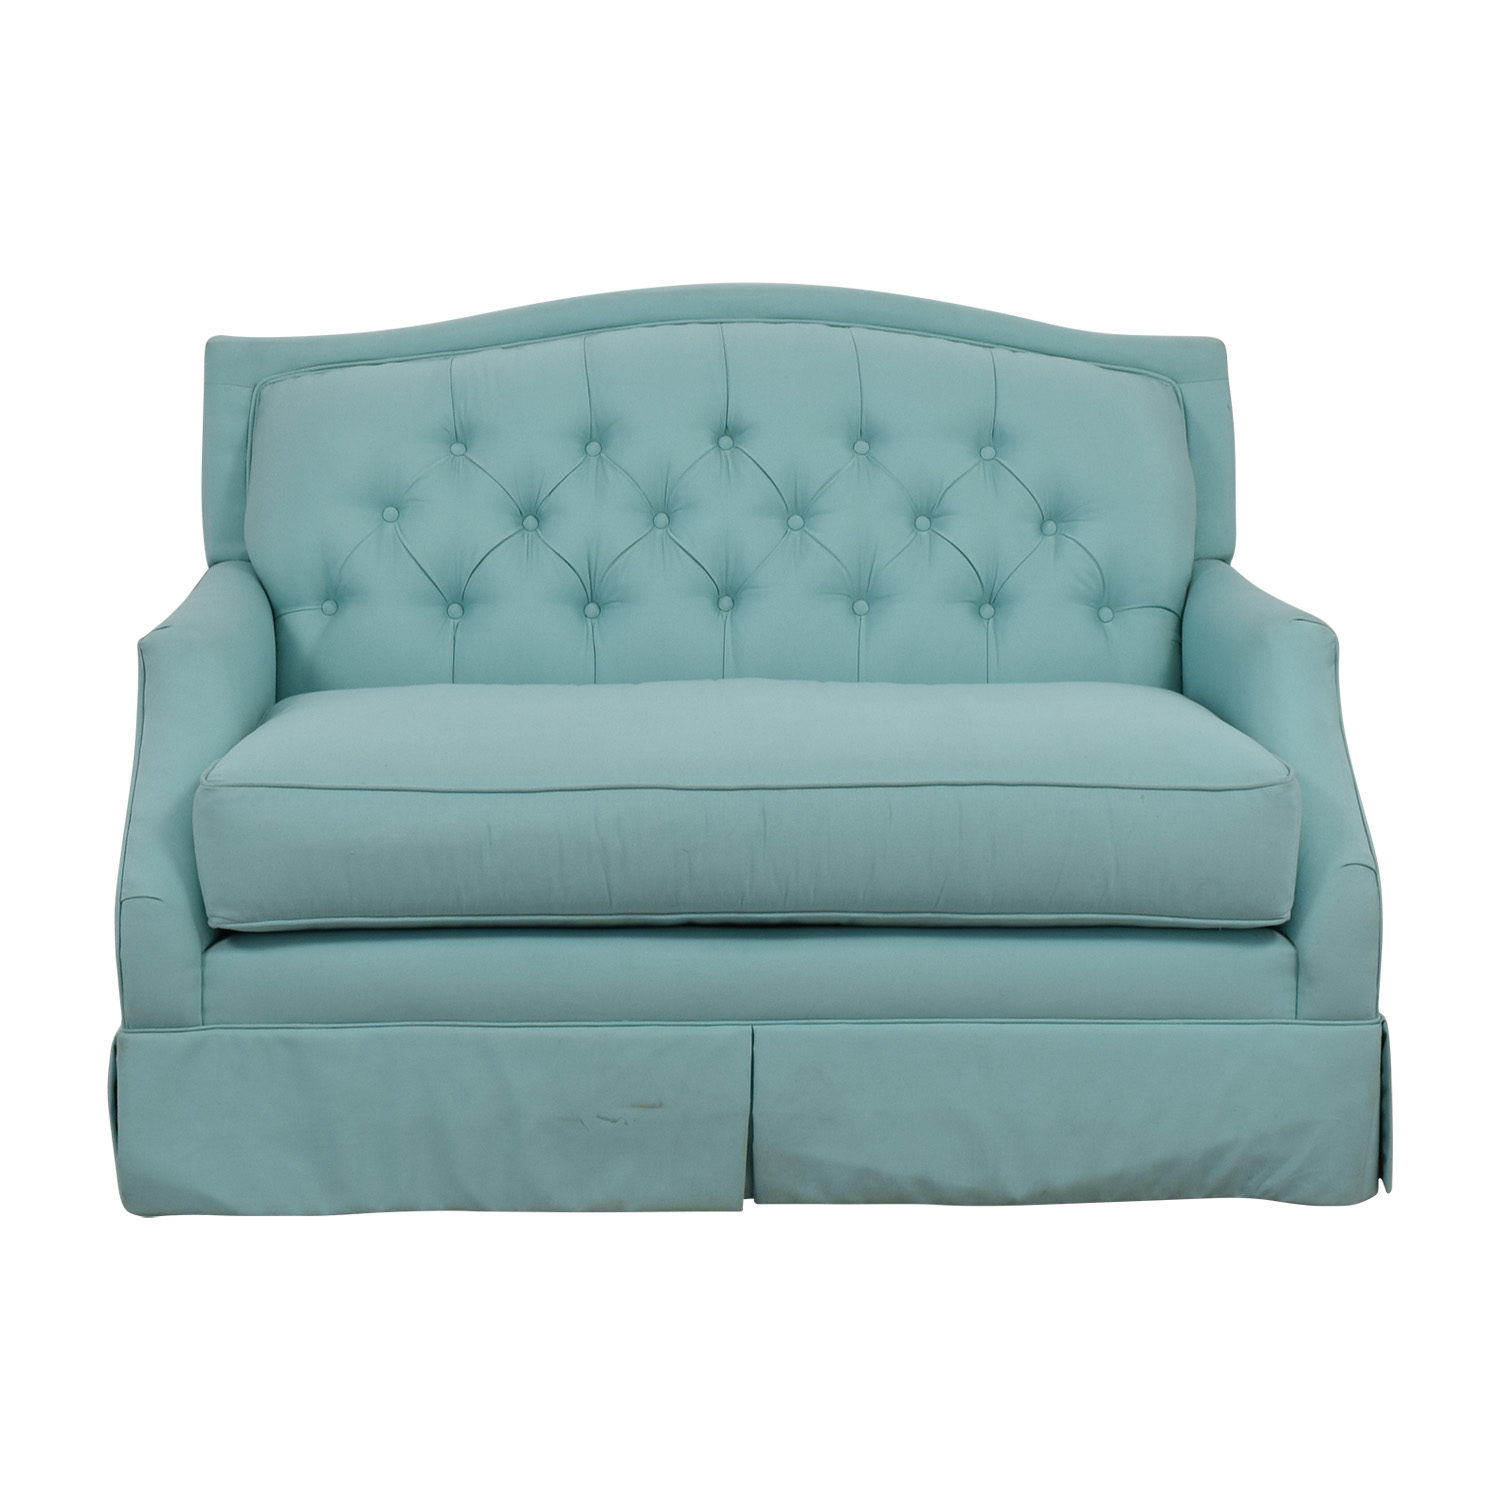 Turquoise Sofas Loveseats South S Live It Cozy 2 Seat